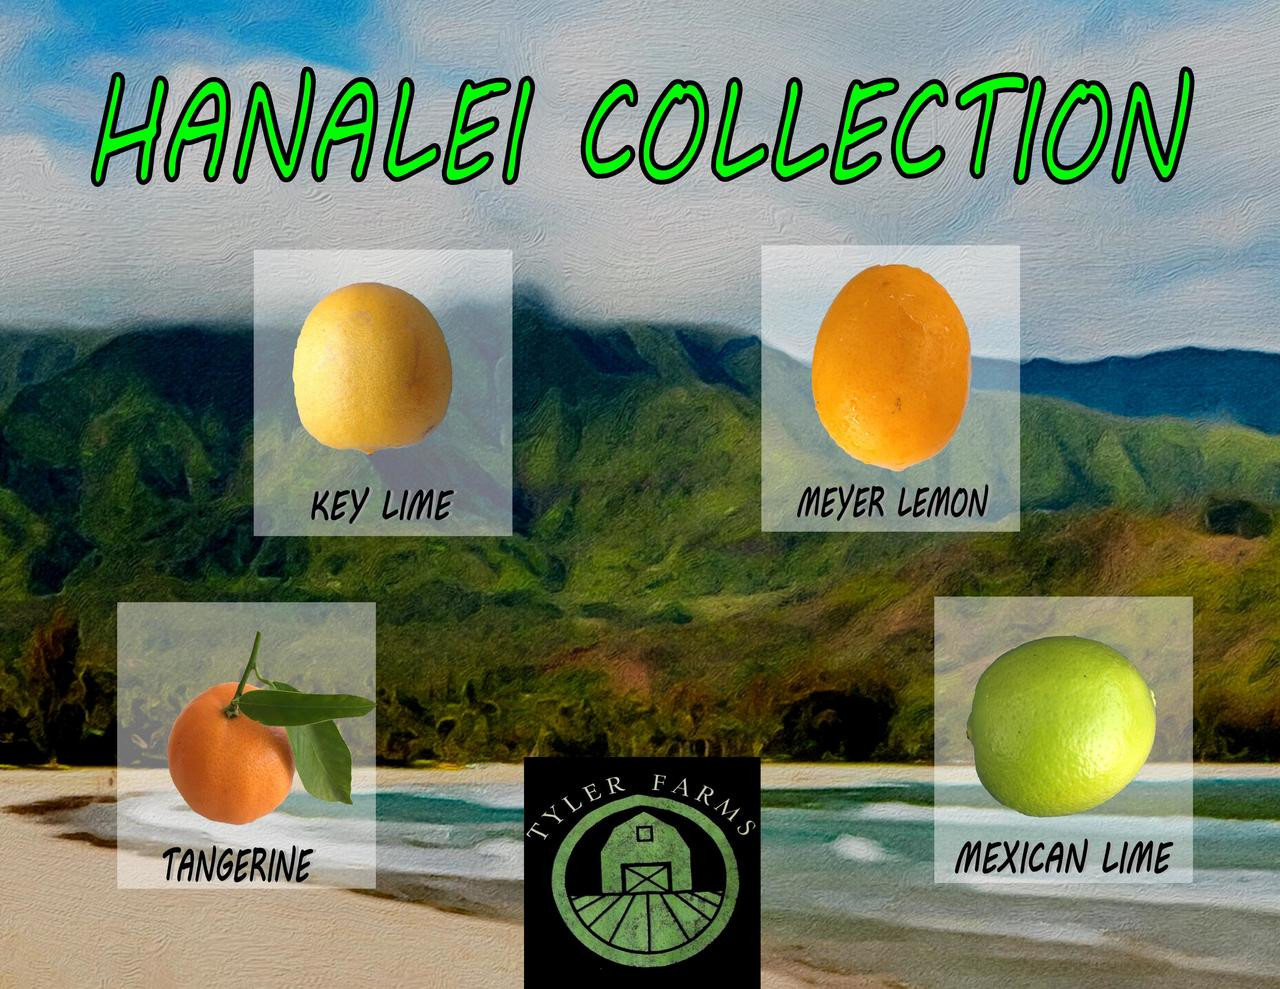 Hanalei Tropical Fruit Seed Collection